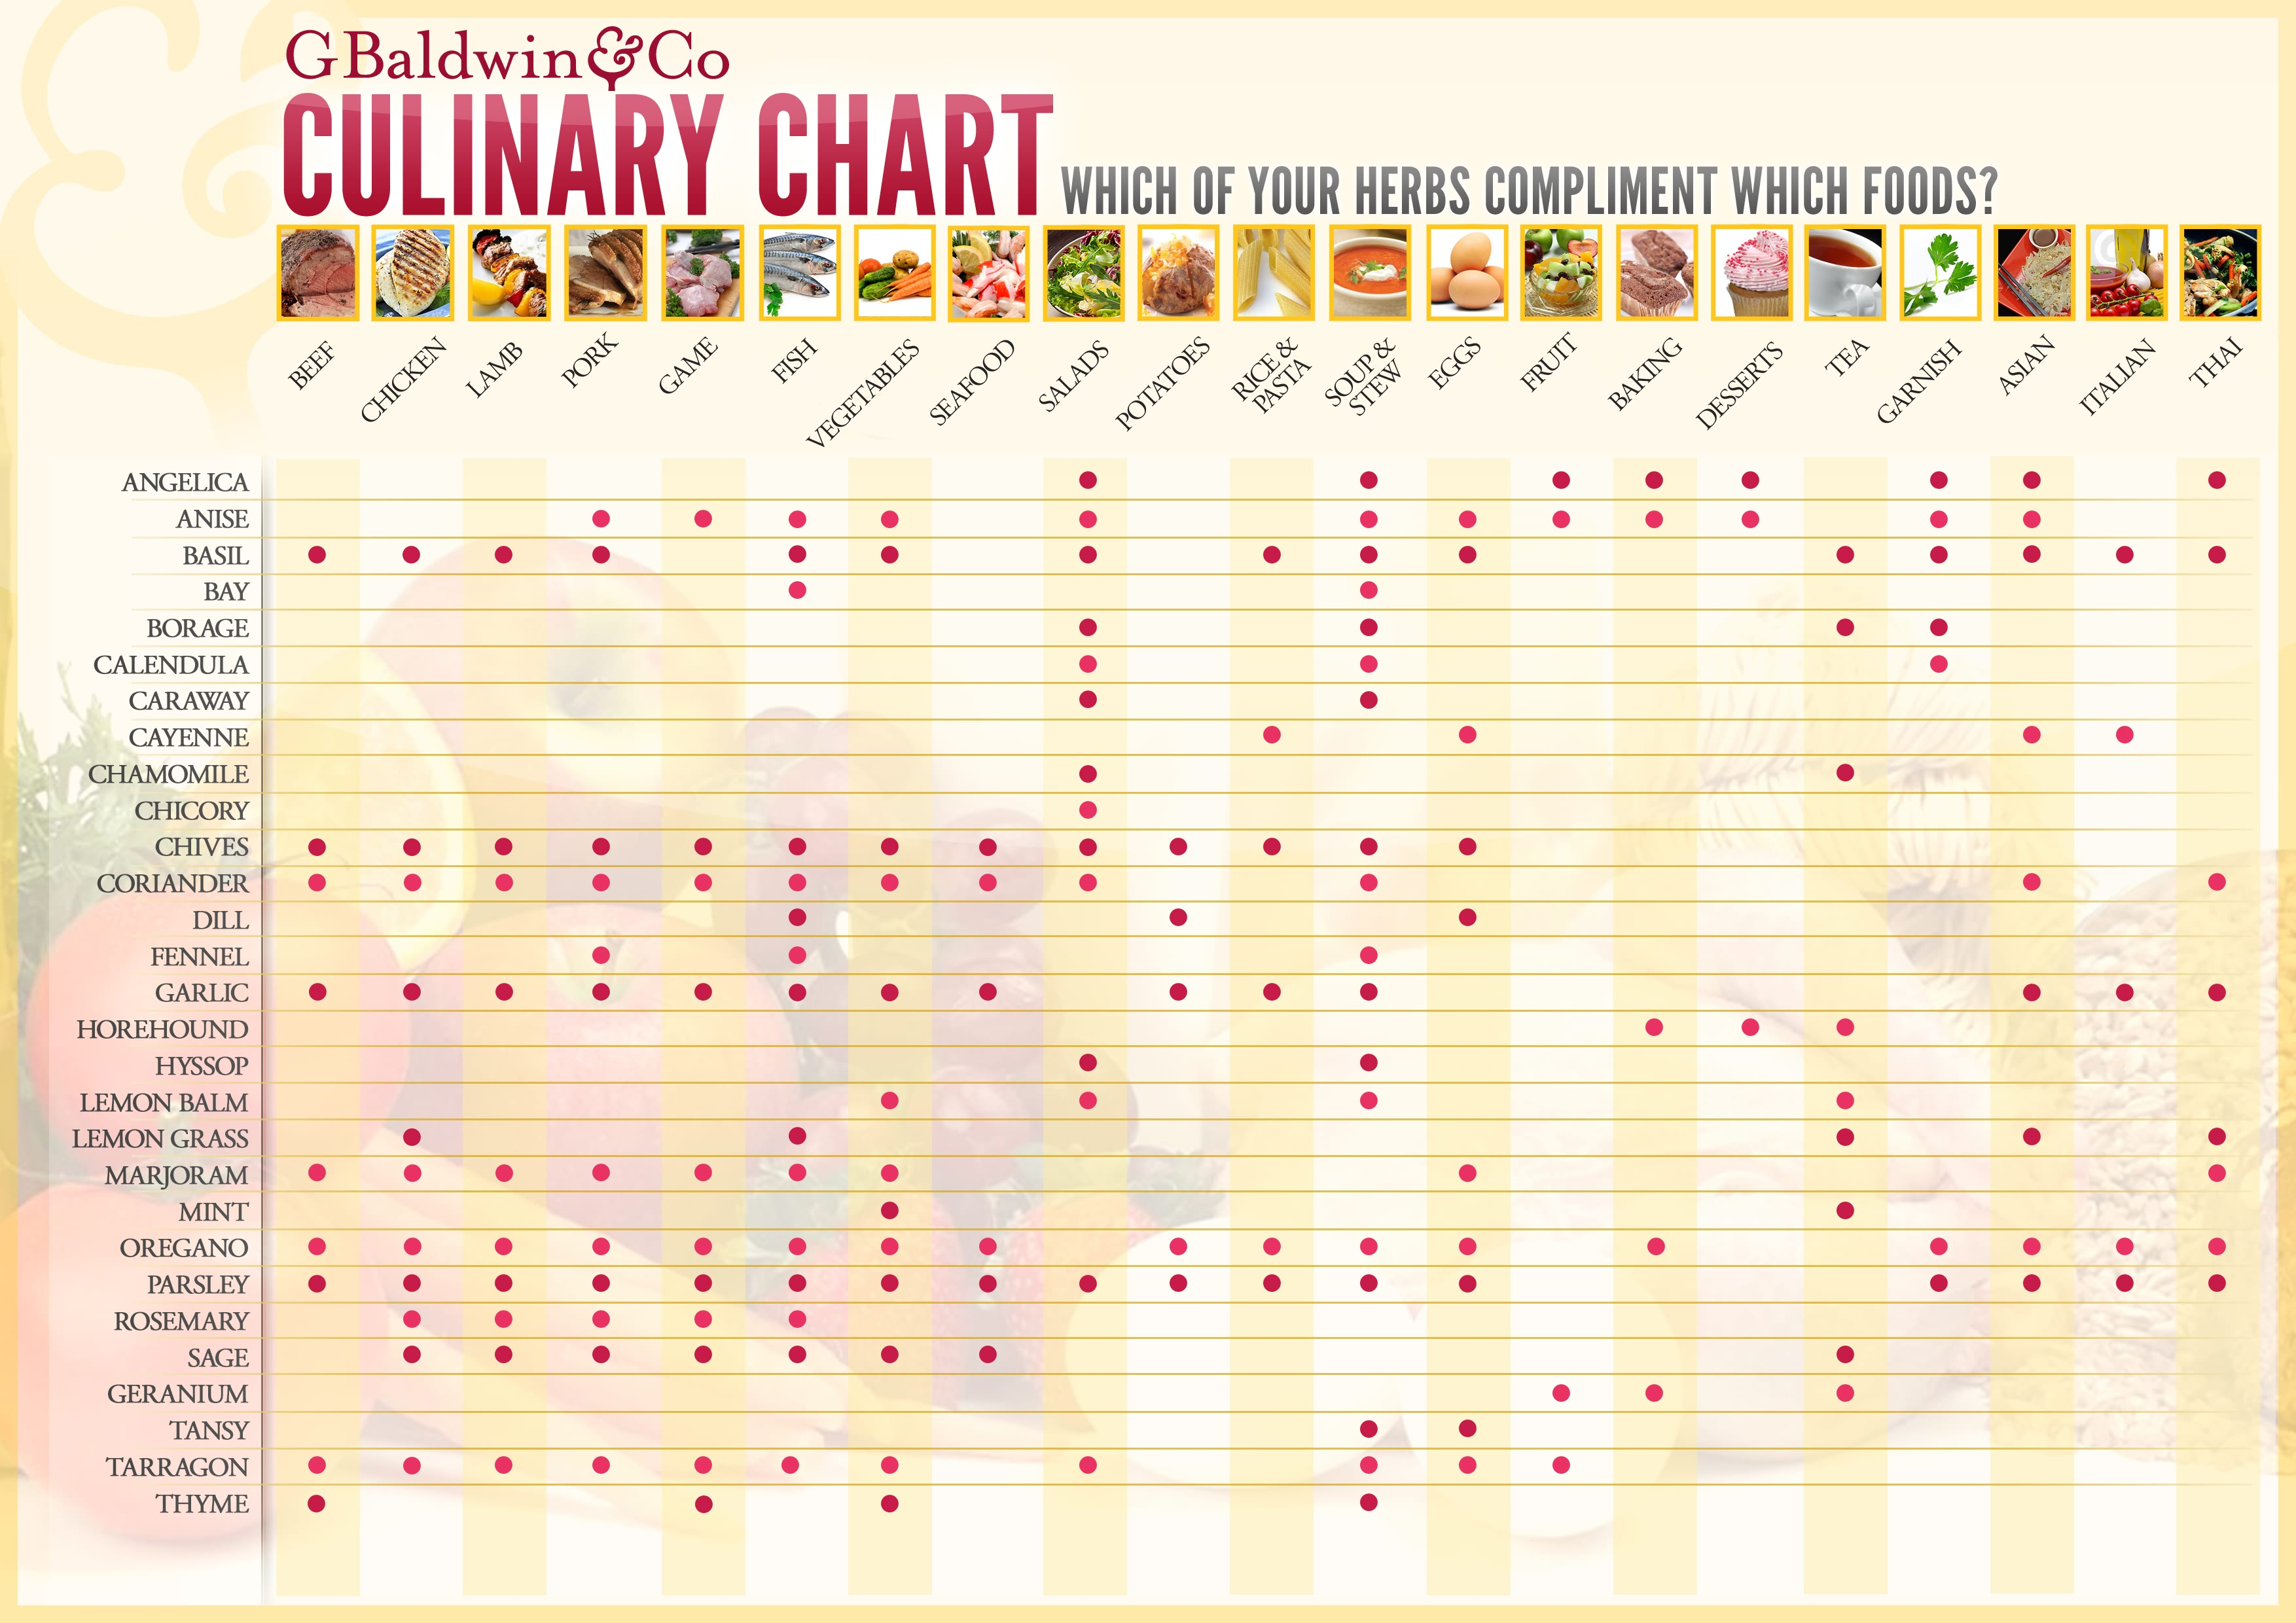 Culinary Chart for Herbs